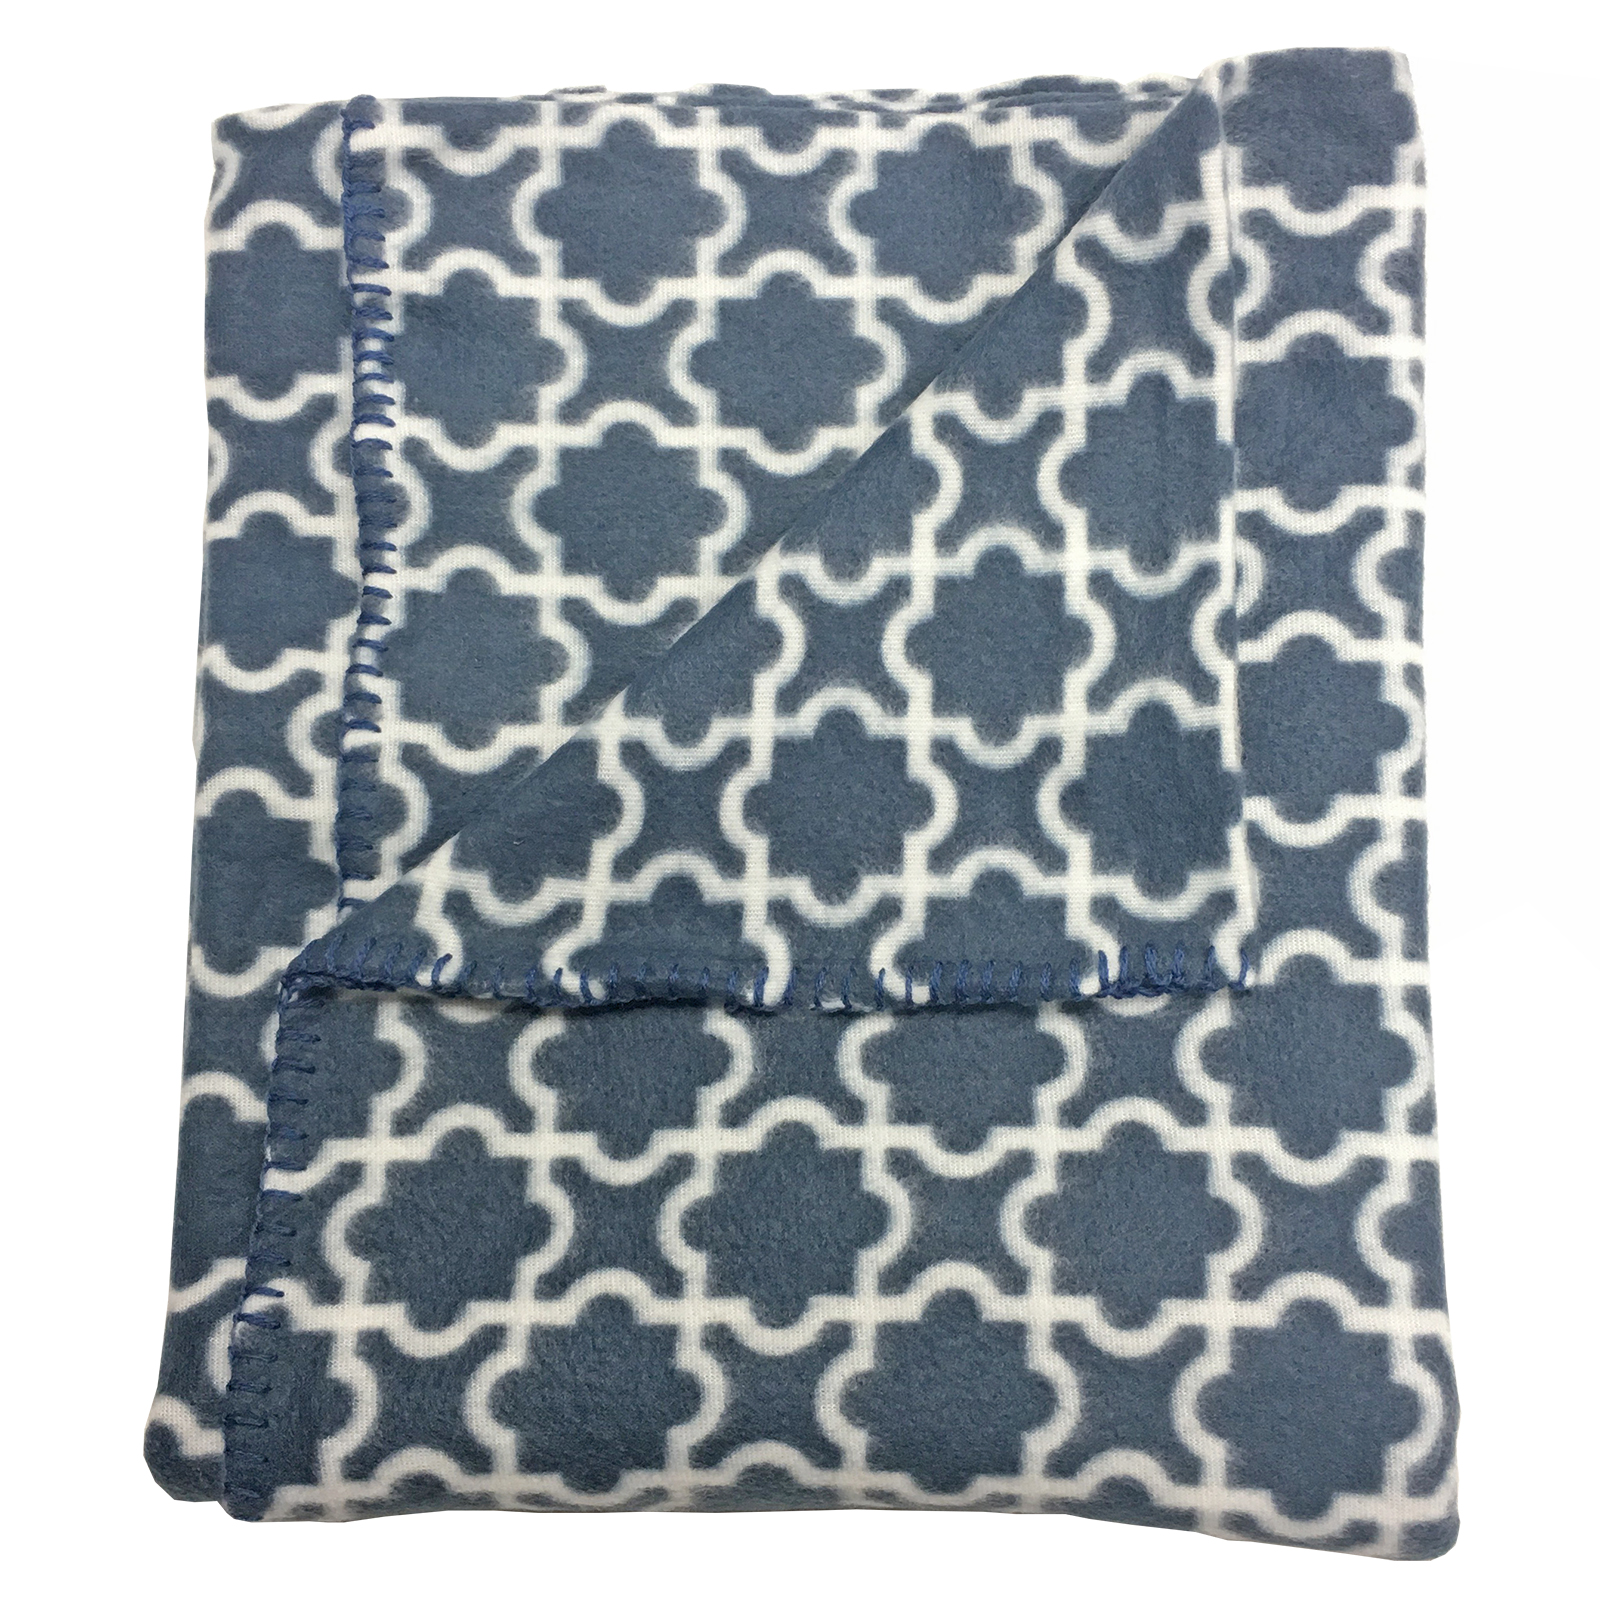 soft  modern throw in fleece fabric with simple moroccan pattern  - picture  of